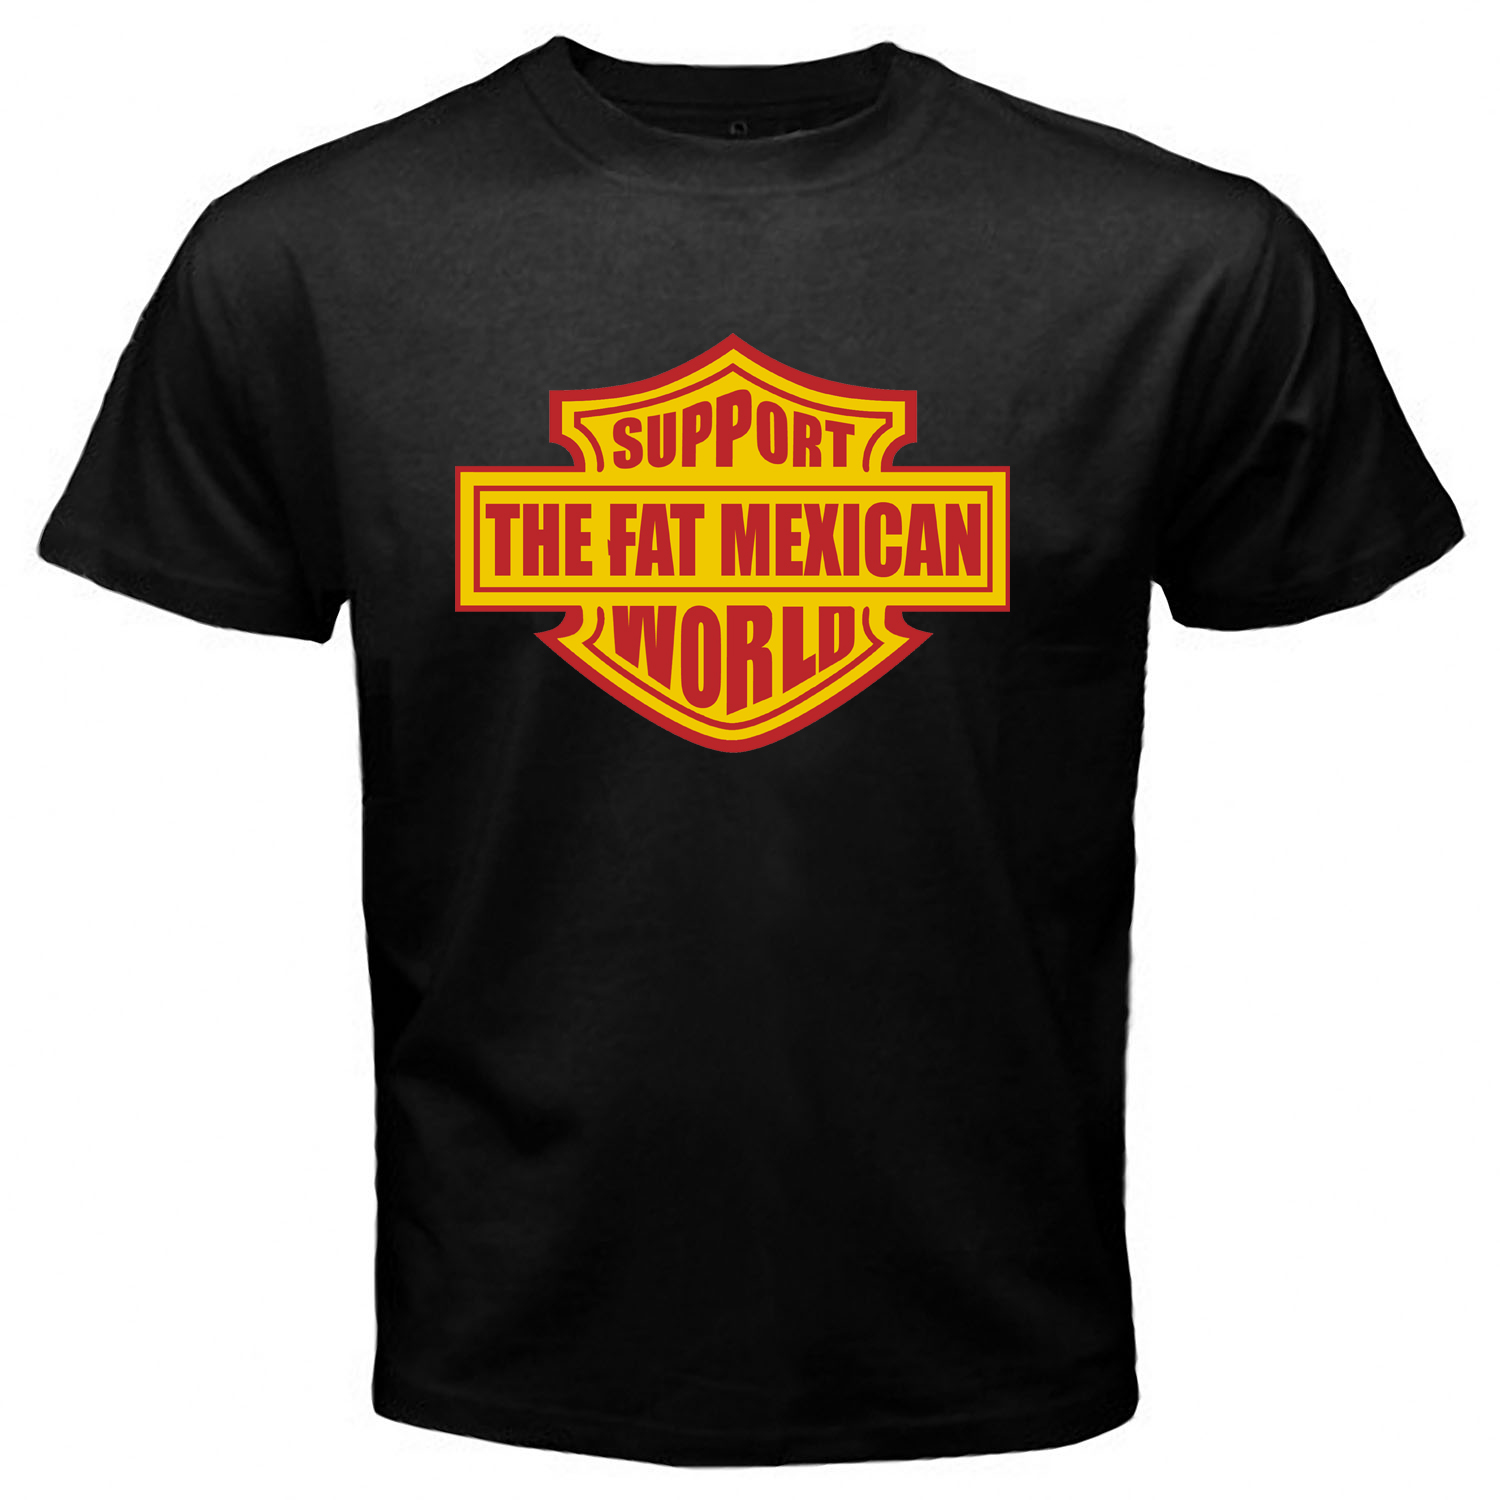 Support Fat Mexican World Bandidos Black Tshirt One Side